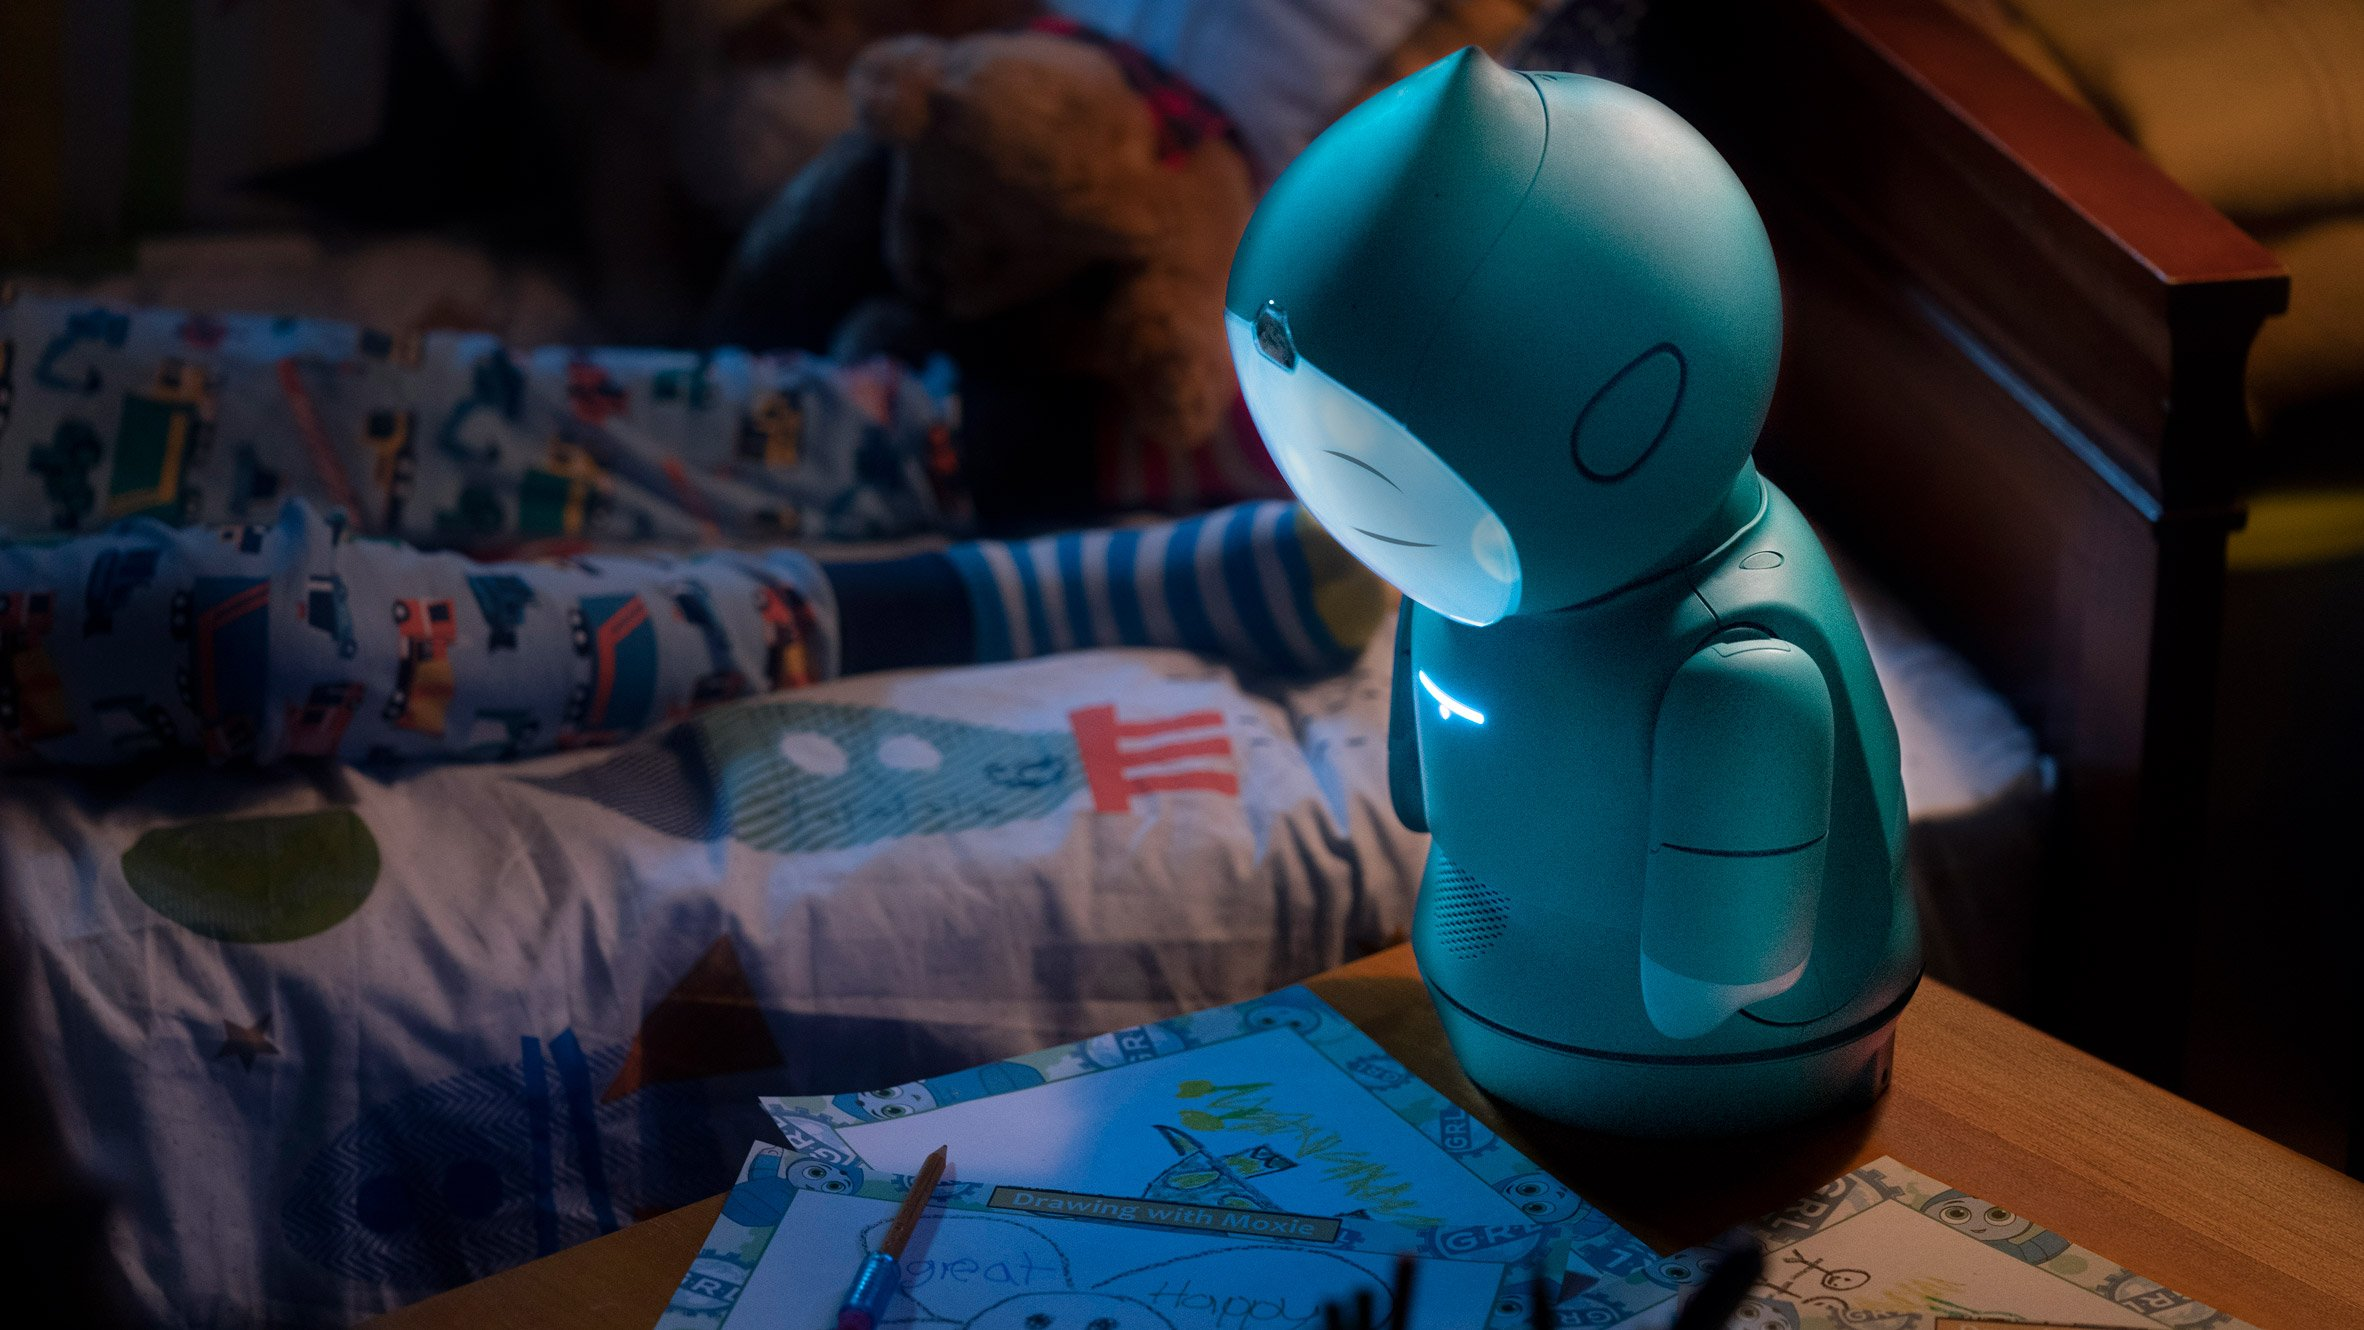 Embodied has designed a robot companion for children called Moxie